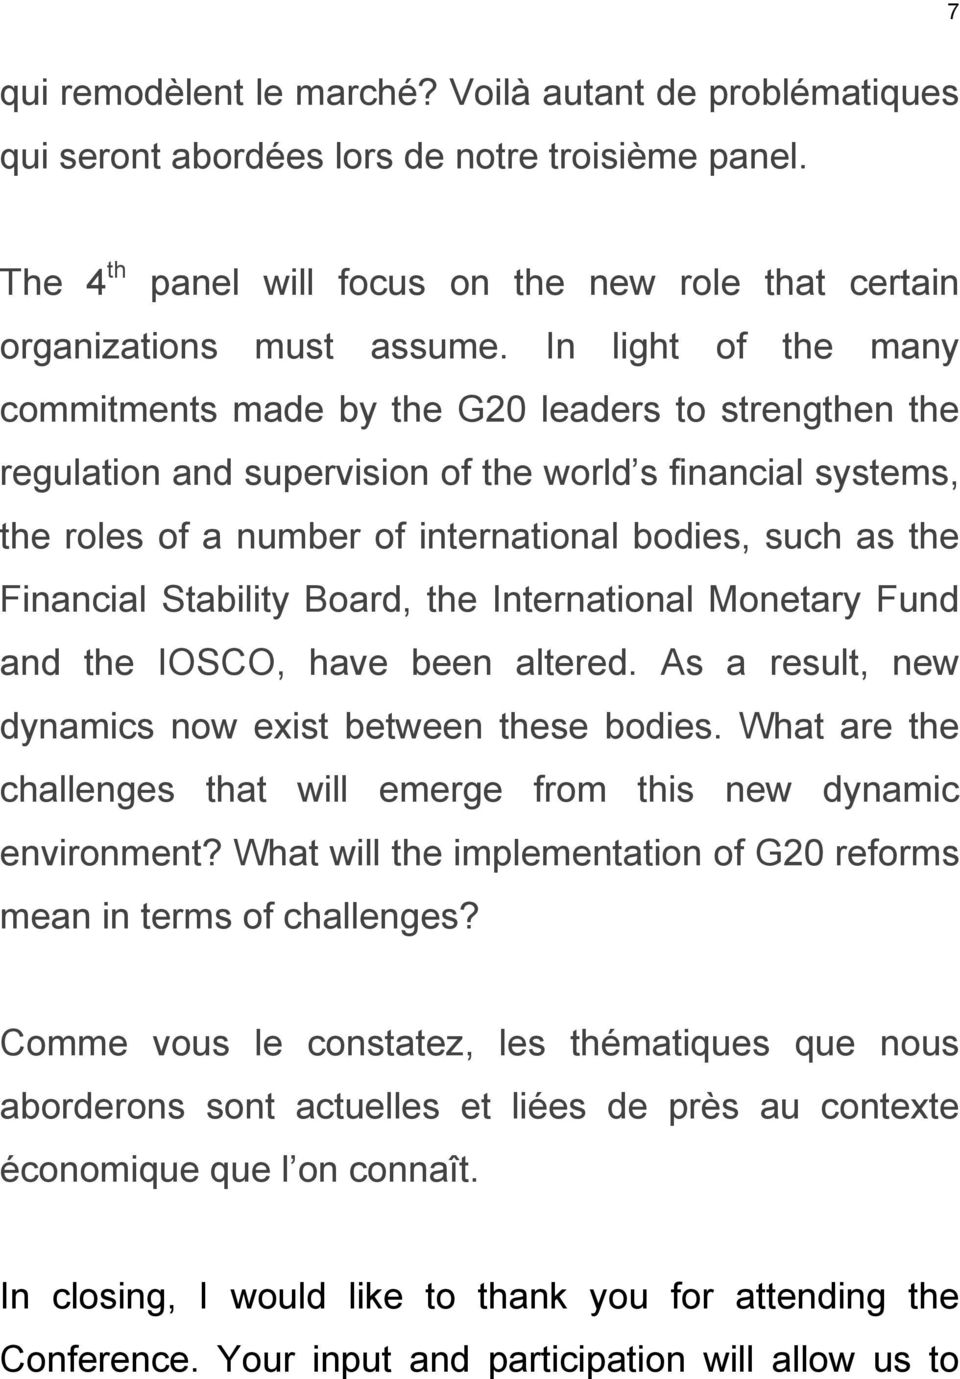 Financial Stability Board, the International Monetary Fund and the IOSCO, have been altered. As a result, new dynamics now exist between these bodies.